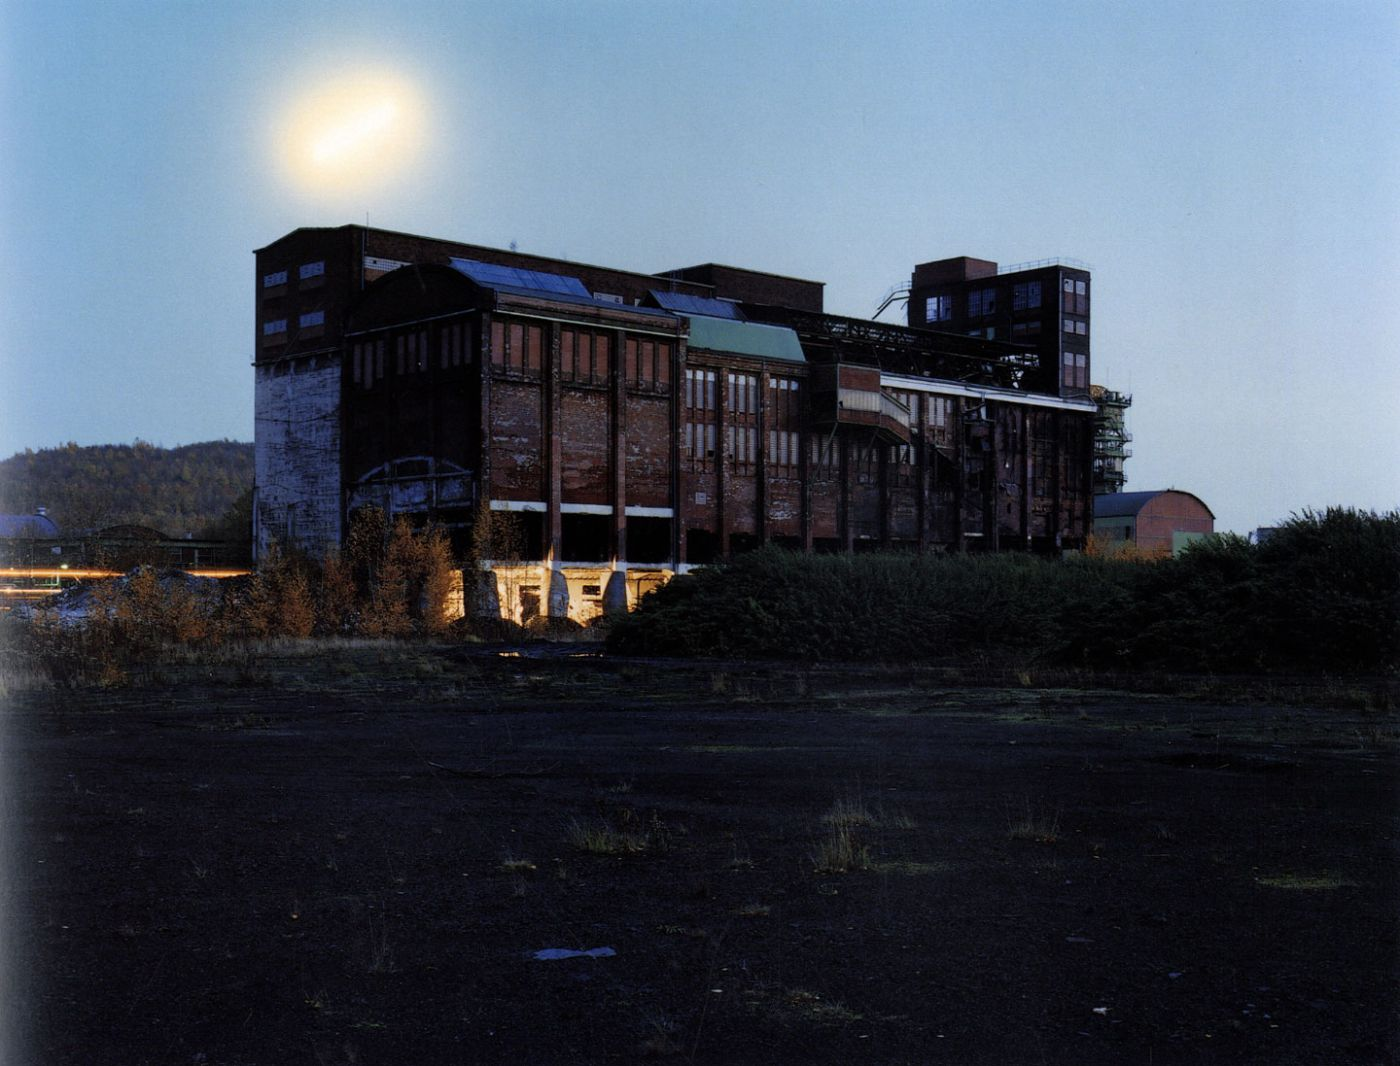 Naoya Hatakeyama: Zeche Westfalen I/II, Ahlen, Limited Edition (slipcased) [SIGNED]